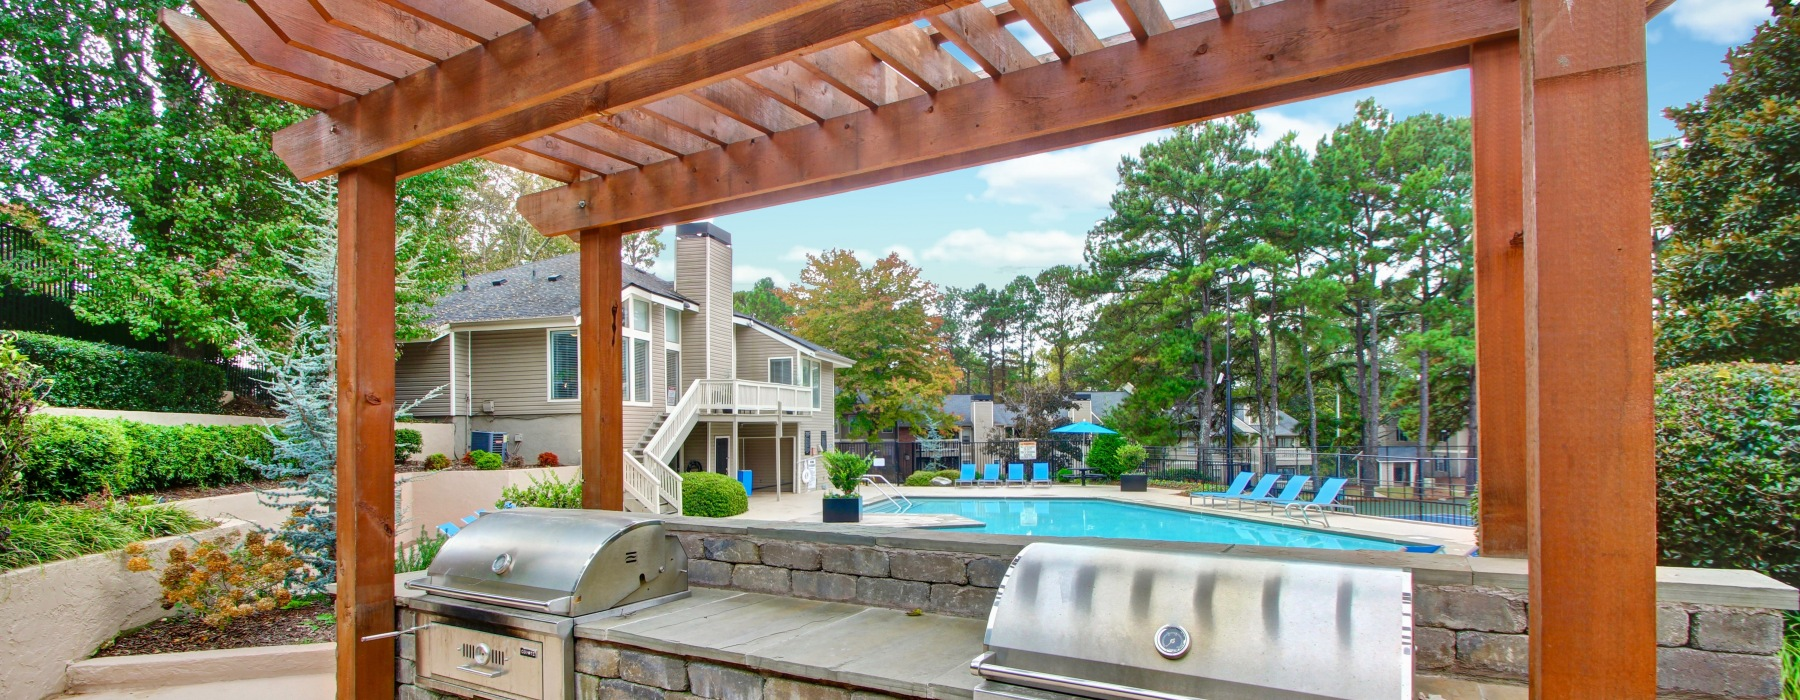 Pergola and grills by the pool